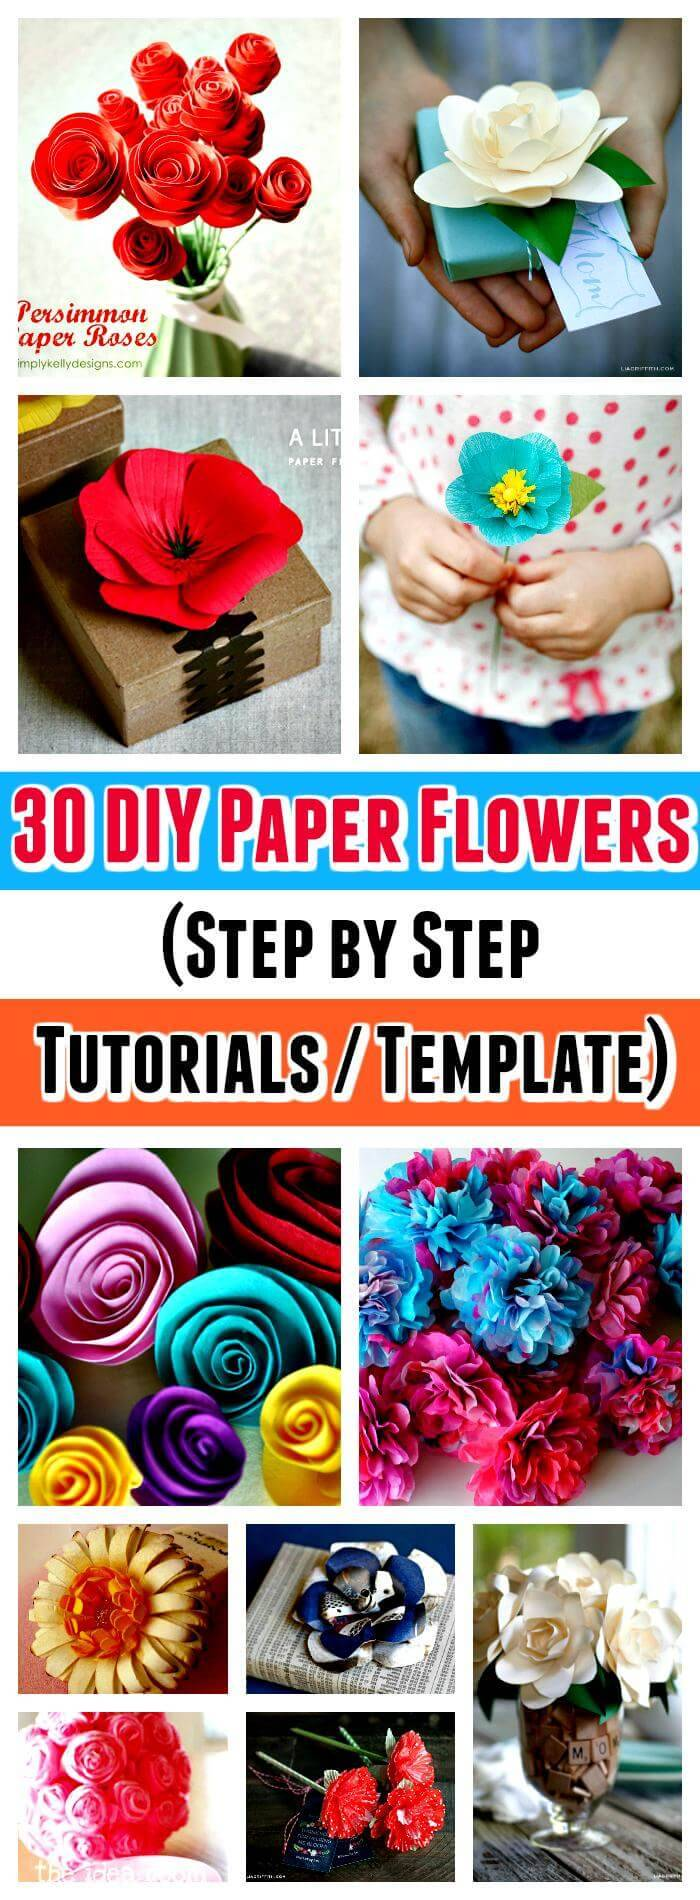 30 Diy Paper Flowers Step By Step Tutorials Template Diy Crafts